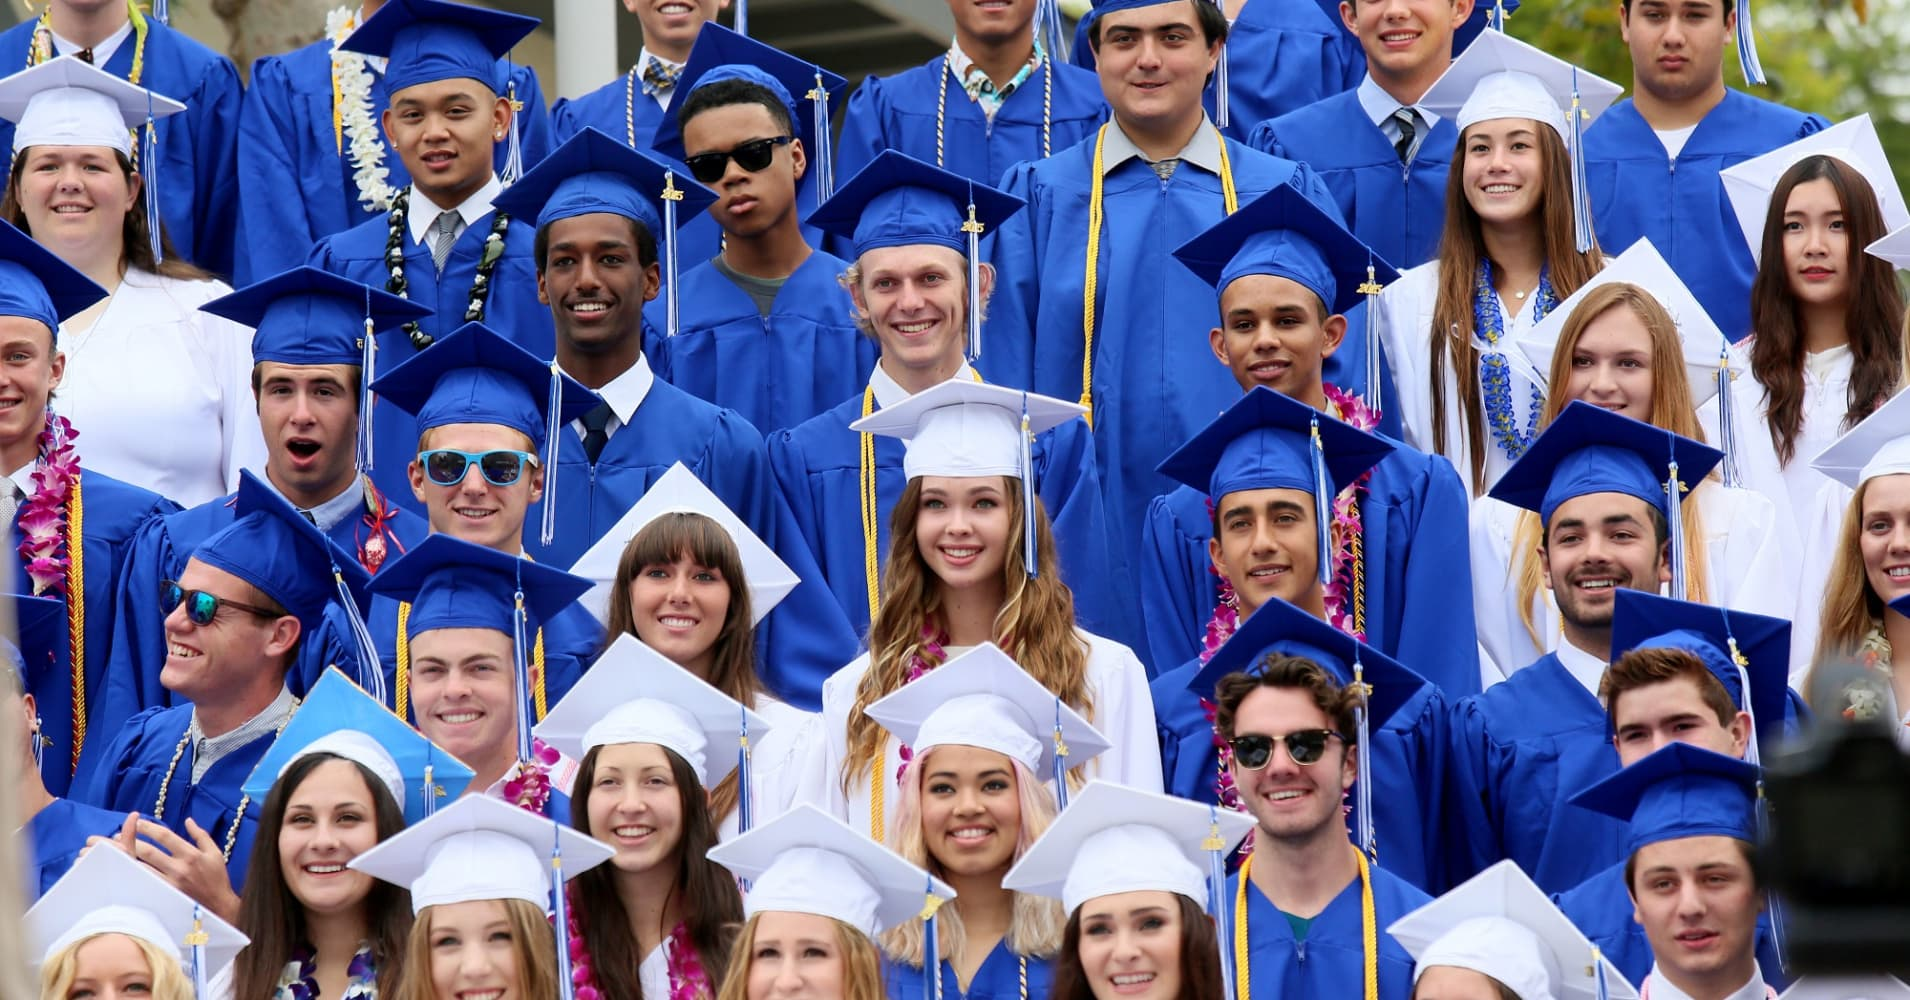 Wealth manager offers 4 key financial tips for high school grads